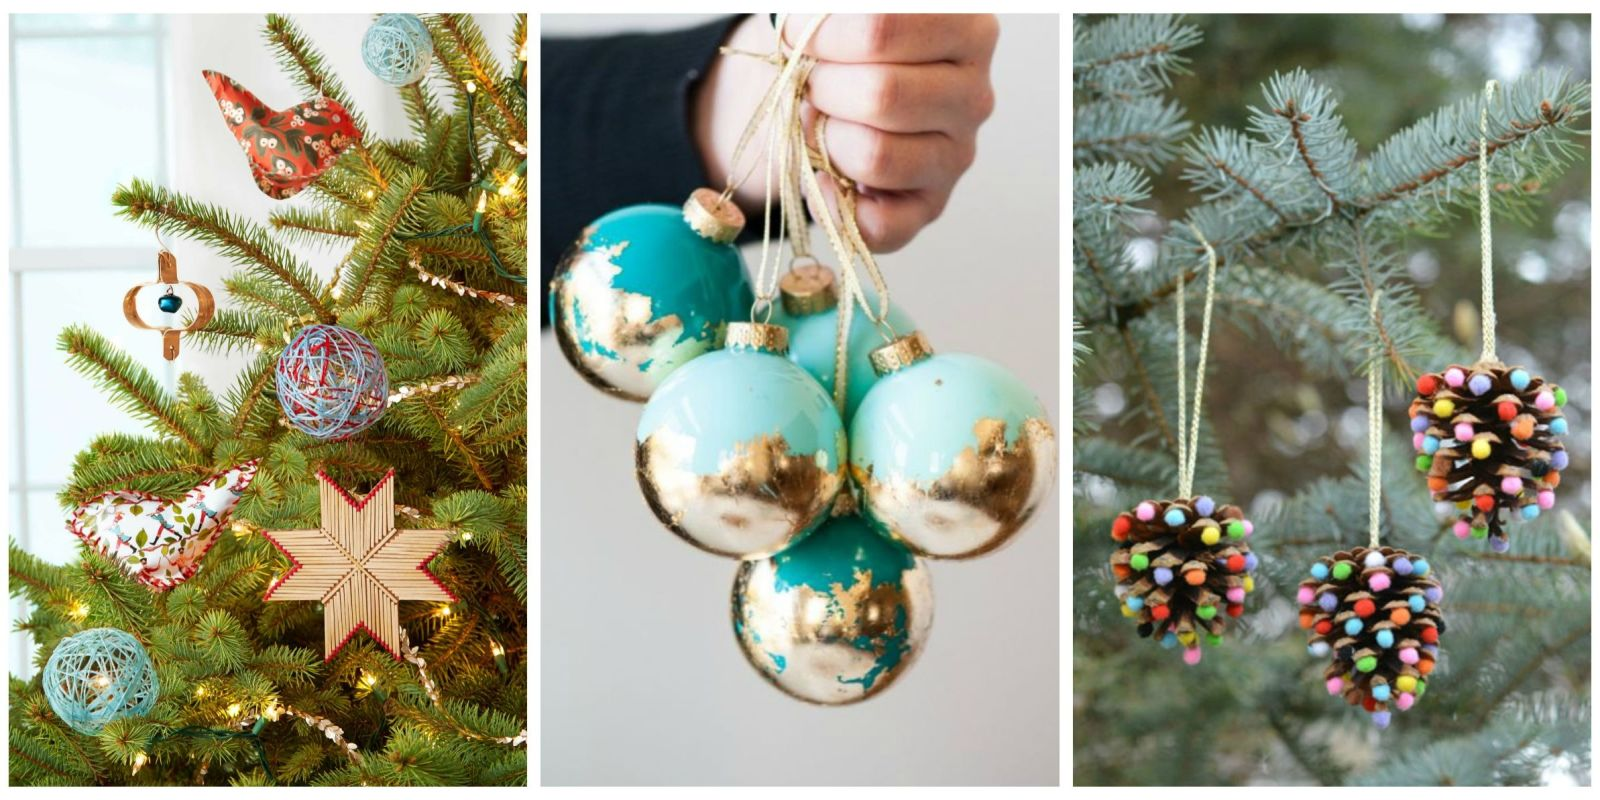 32 homemade diy christmas ornament craft ideas how to for Christmas decorations to make at home with the kids